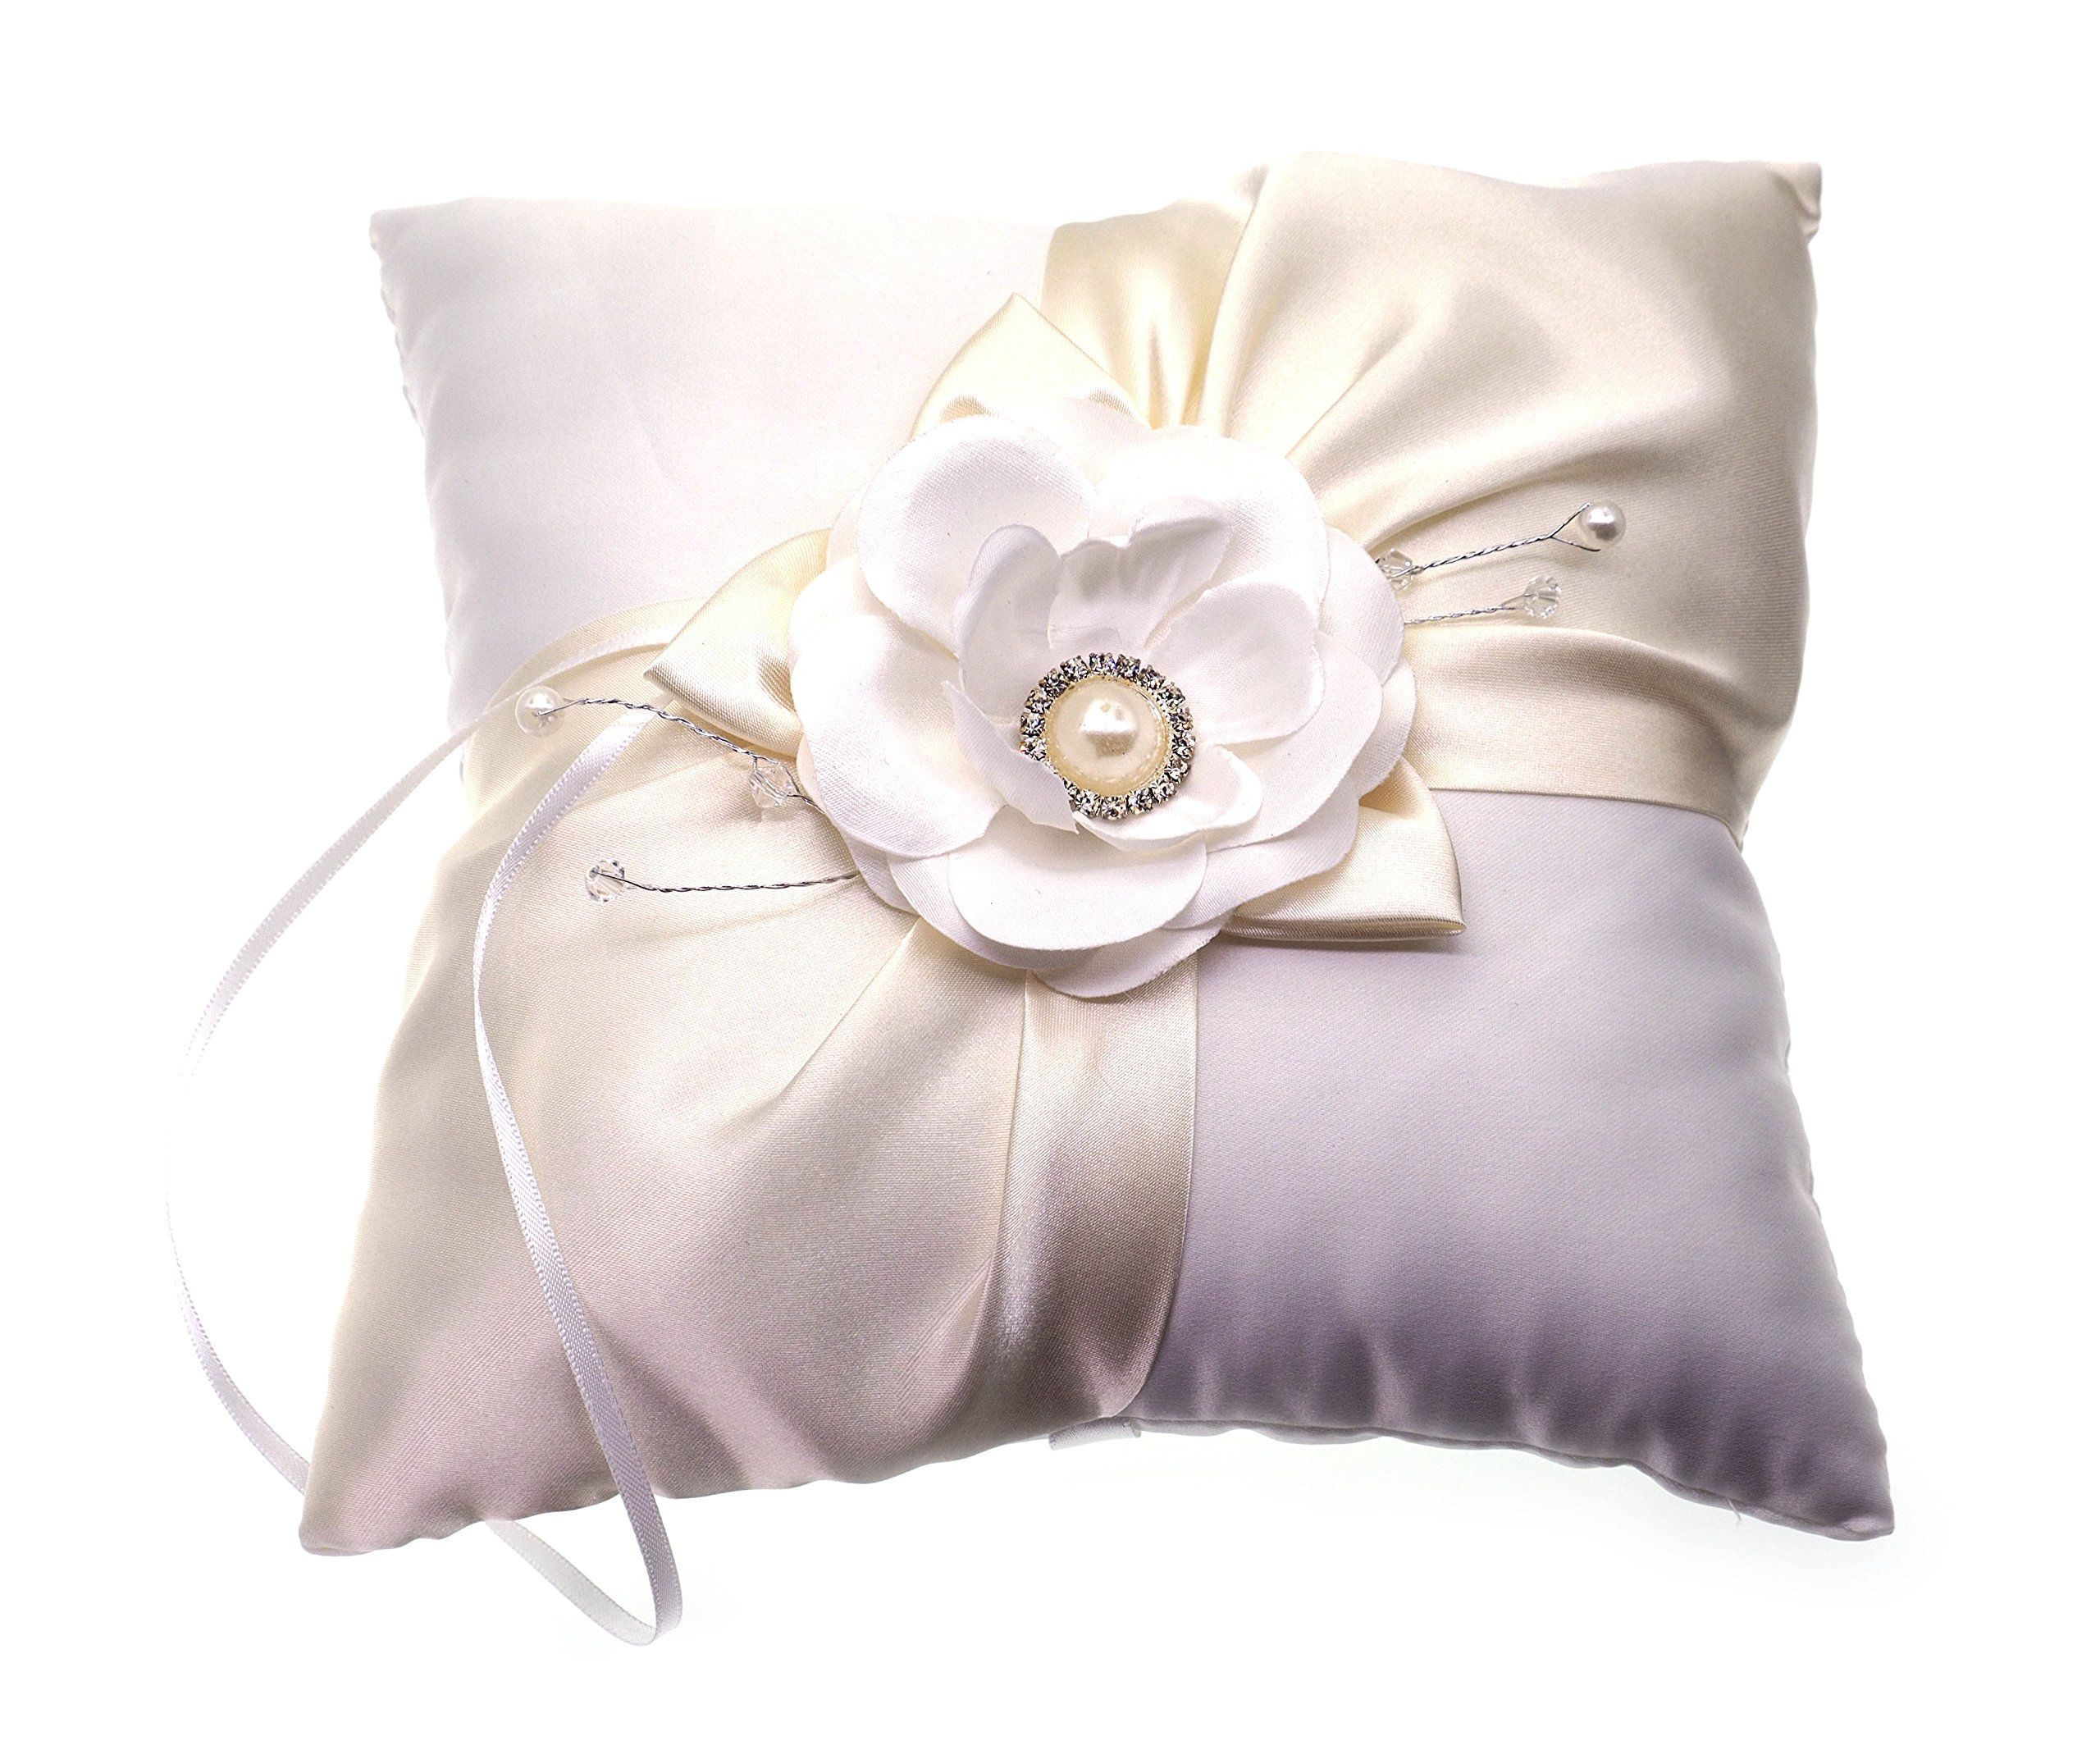 Creationtop 2020cm Luxe Flower Buds Faux Pearls Decor Bridal Wedding Ceramony Pocket Ring Pillow Cushion Bearer with Ribbons (Style 4)